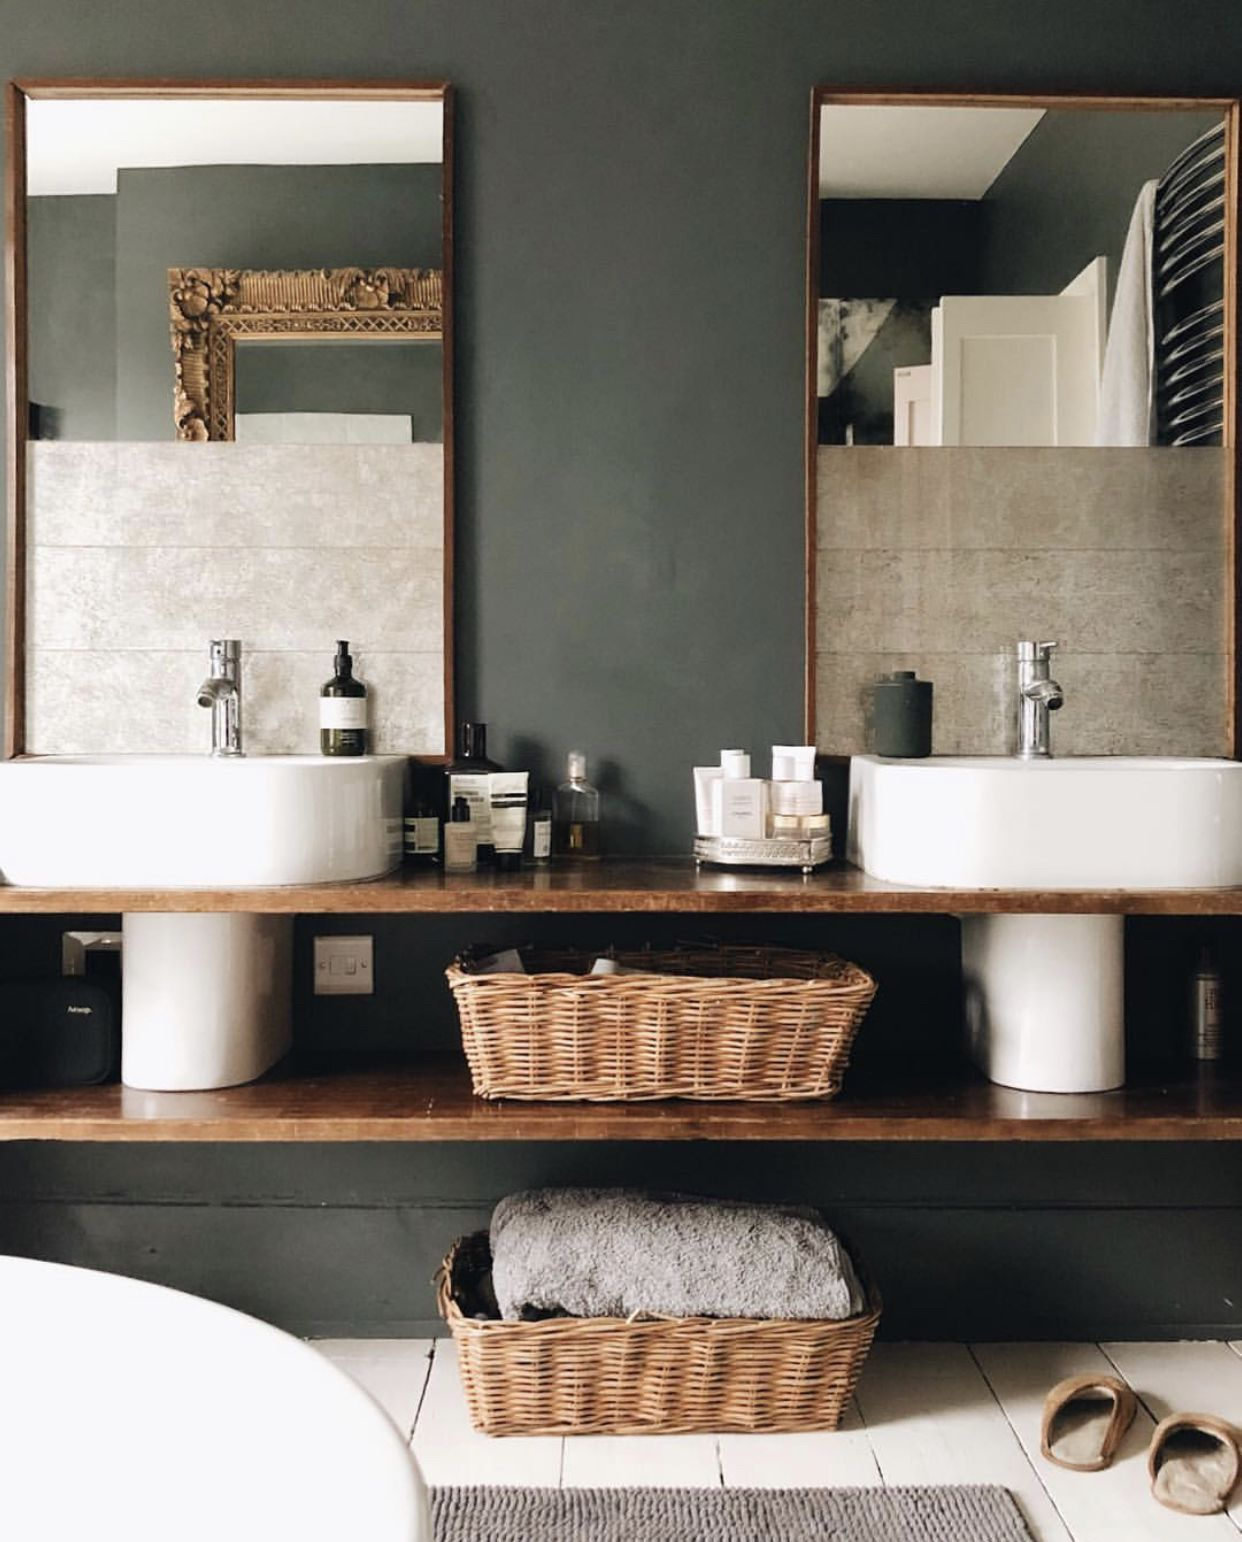 How To Make Your Bathroom Look And Feel Like A Spa Home Decor